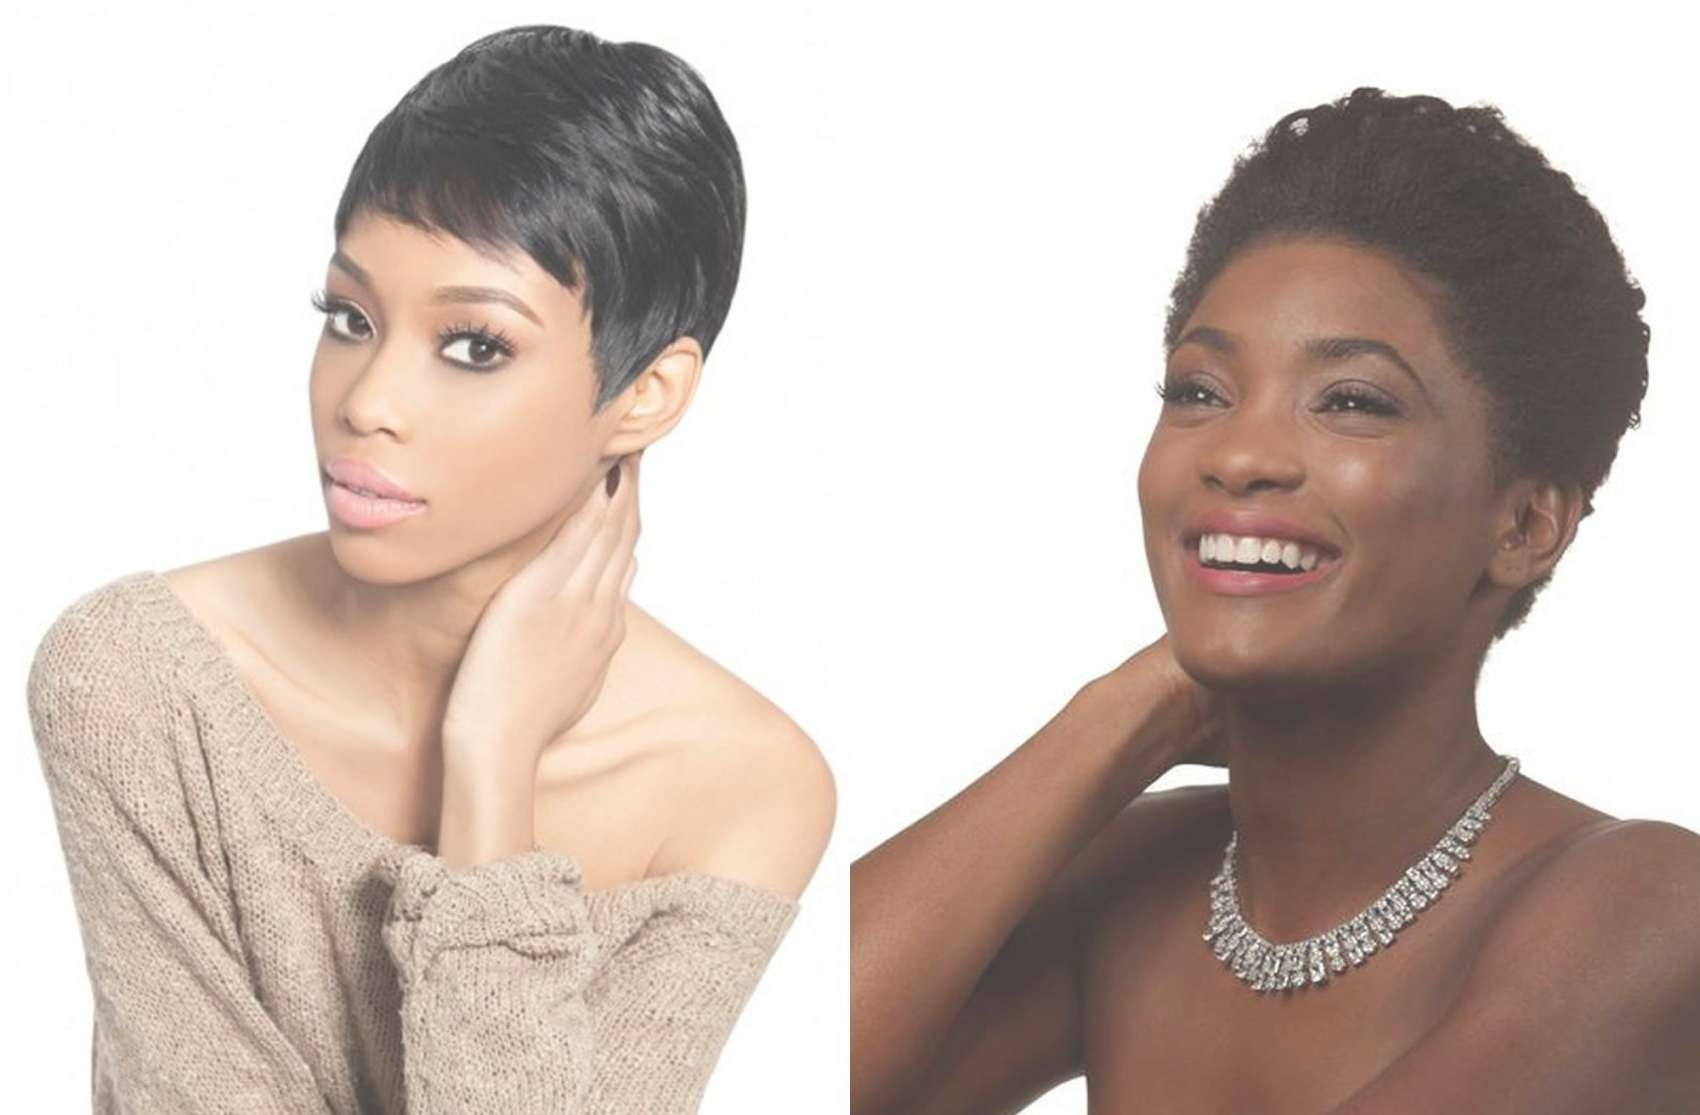 Pixie Hairstyles For Black Women – 60 Cool Short Haircuts For 2017 With Most Popular Black Women Short Pixie Hairstyles (View 10 of 15)